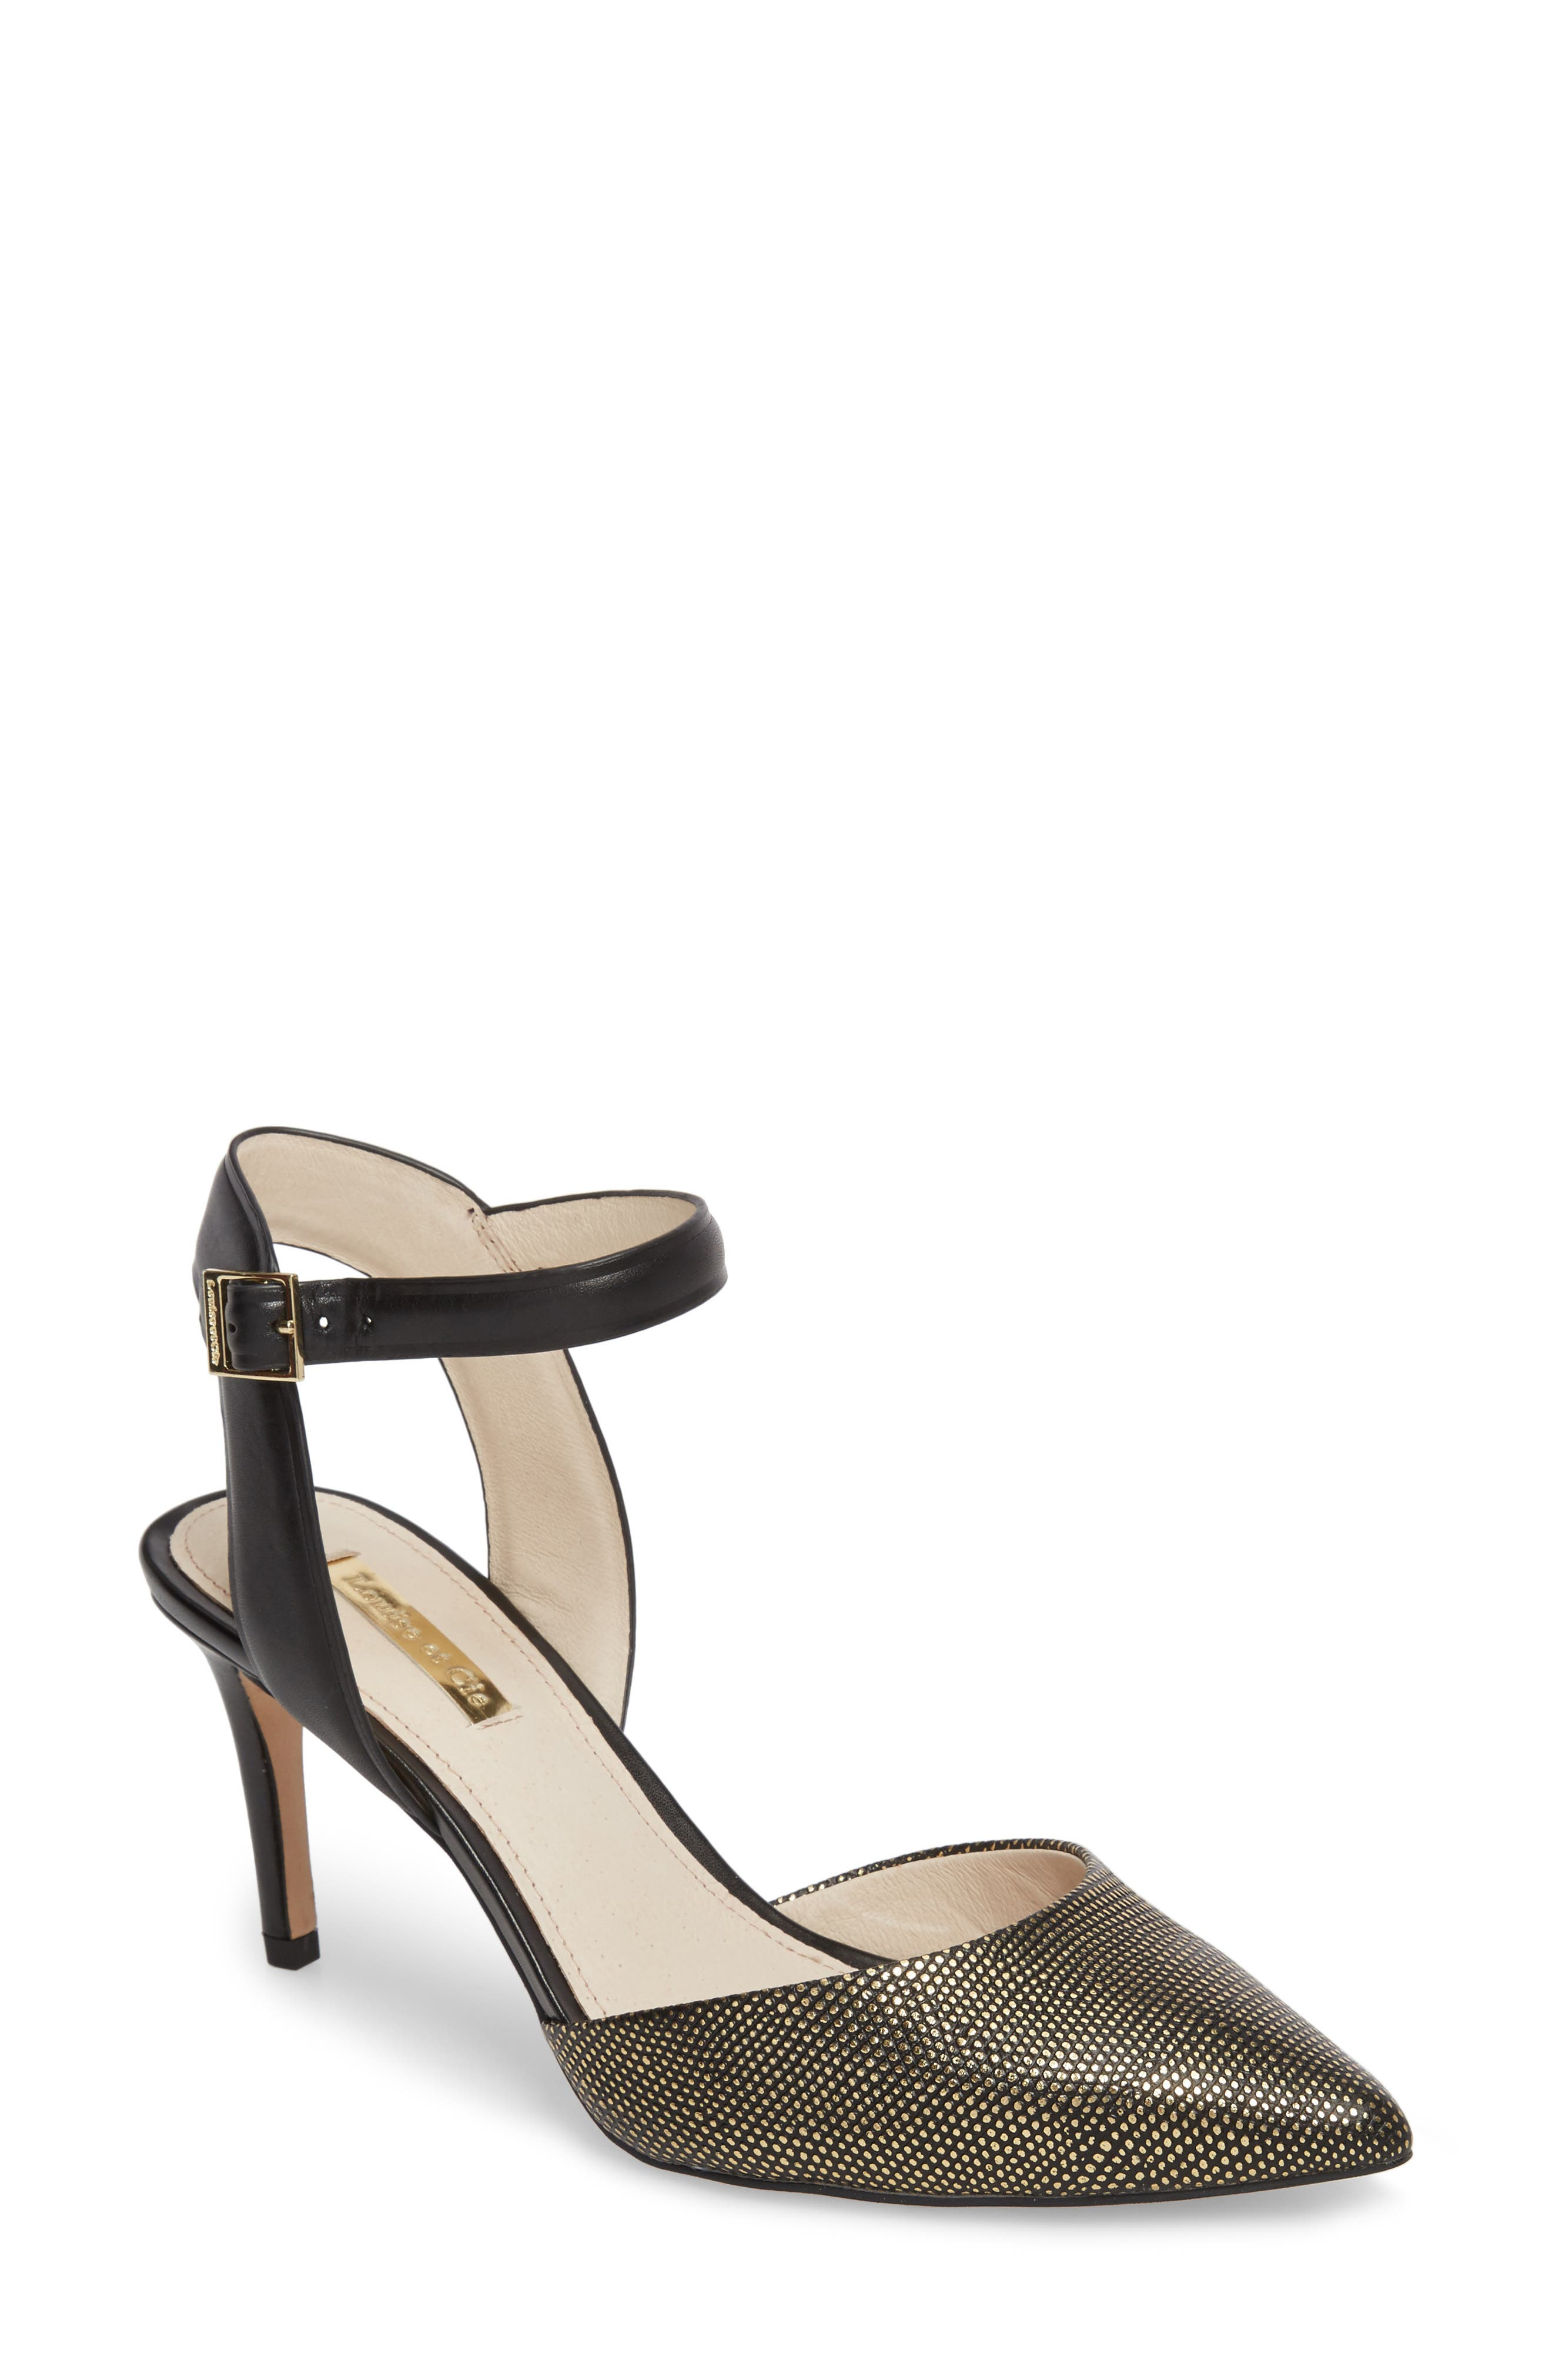 Kota Ankle Strap Pump,                         Main,                         color, 002